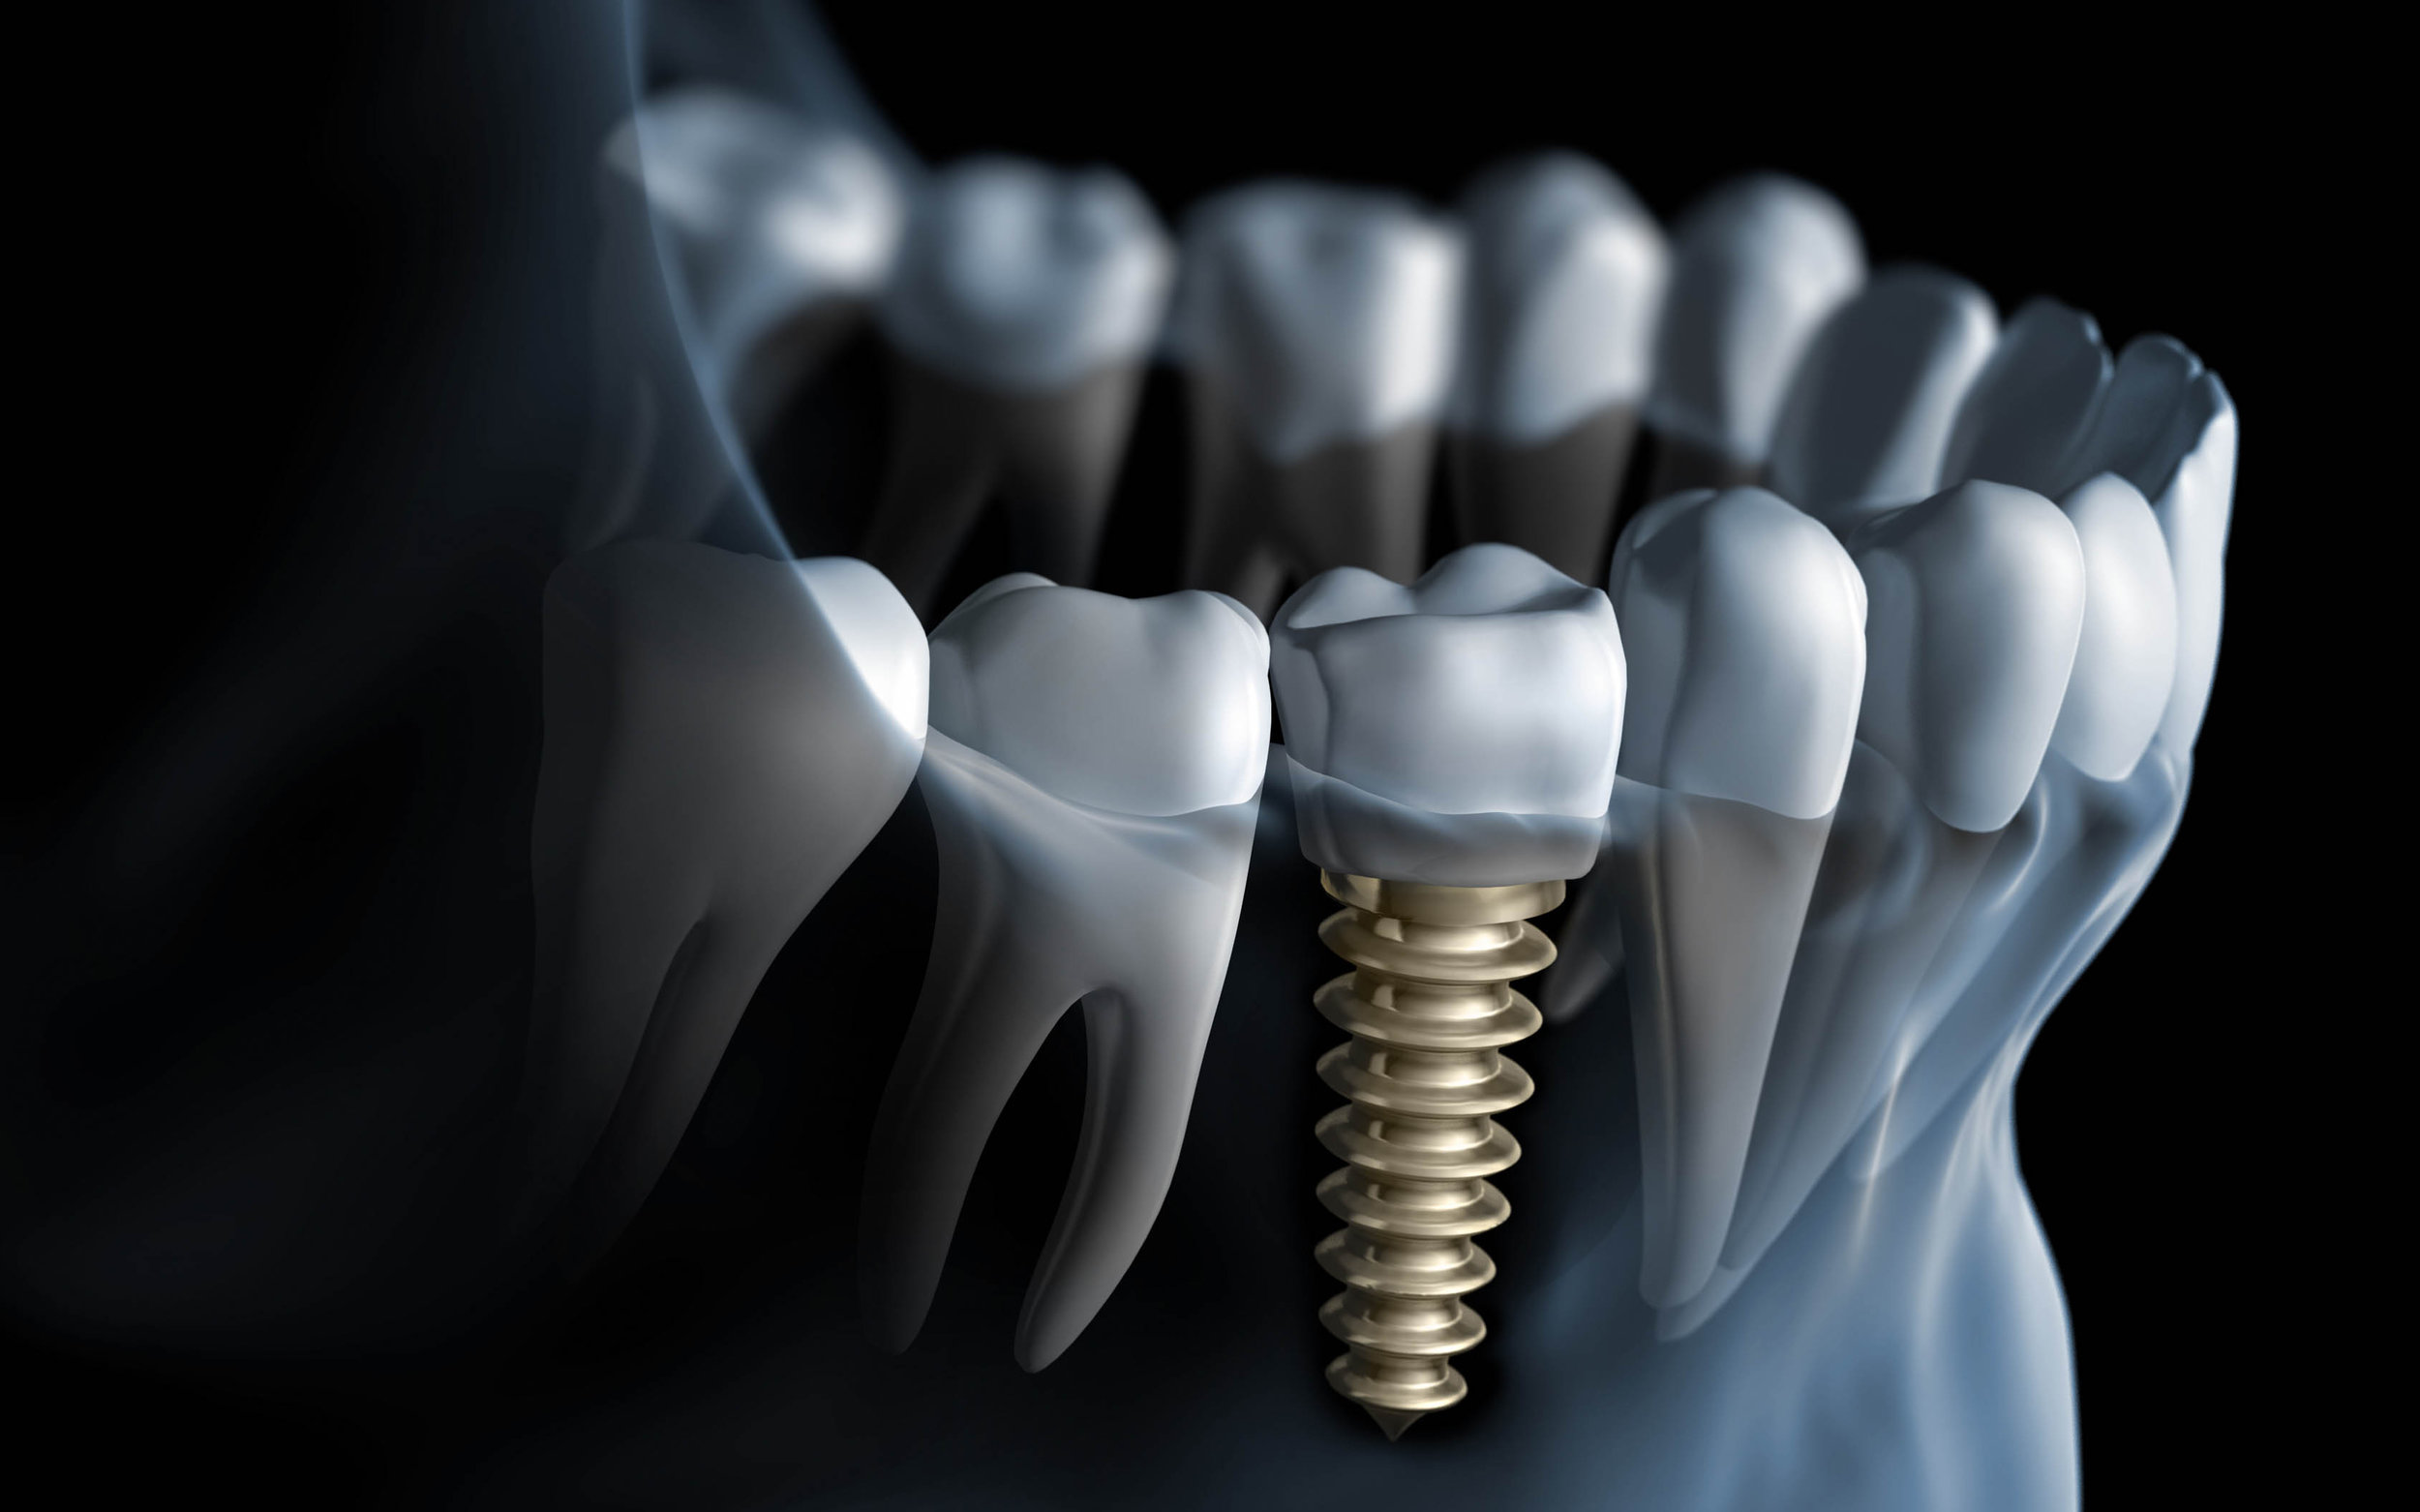 Single Implant - Cost of Dental Implants in Cartagena, Colombia